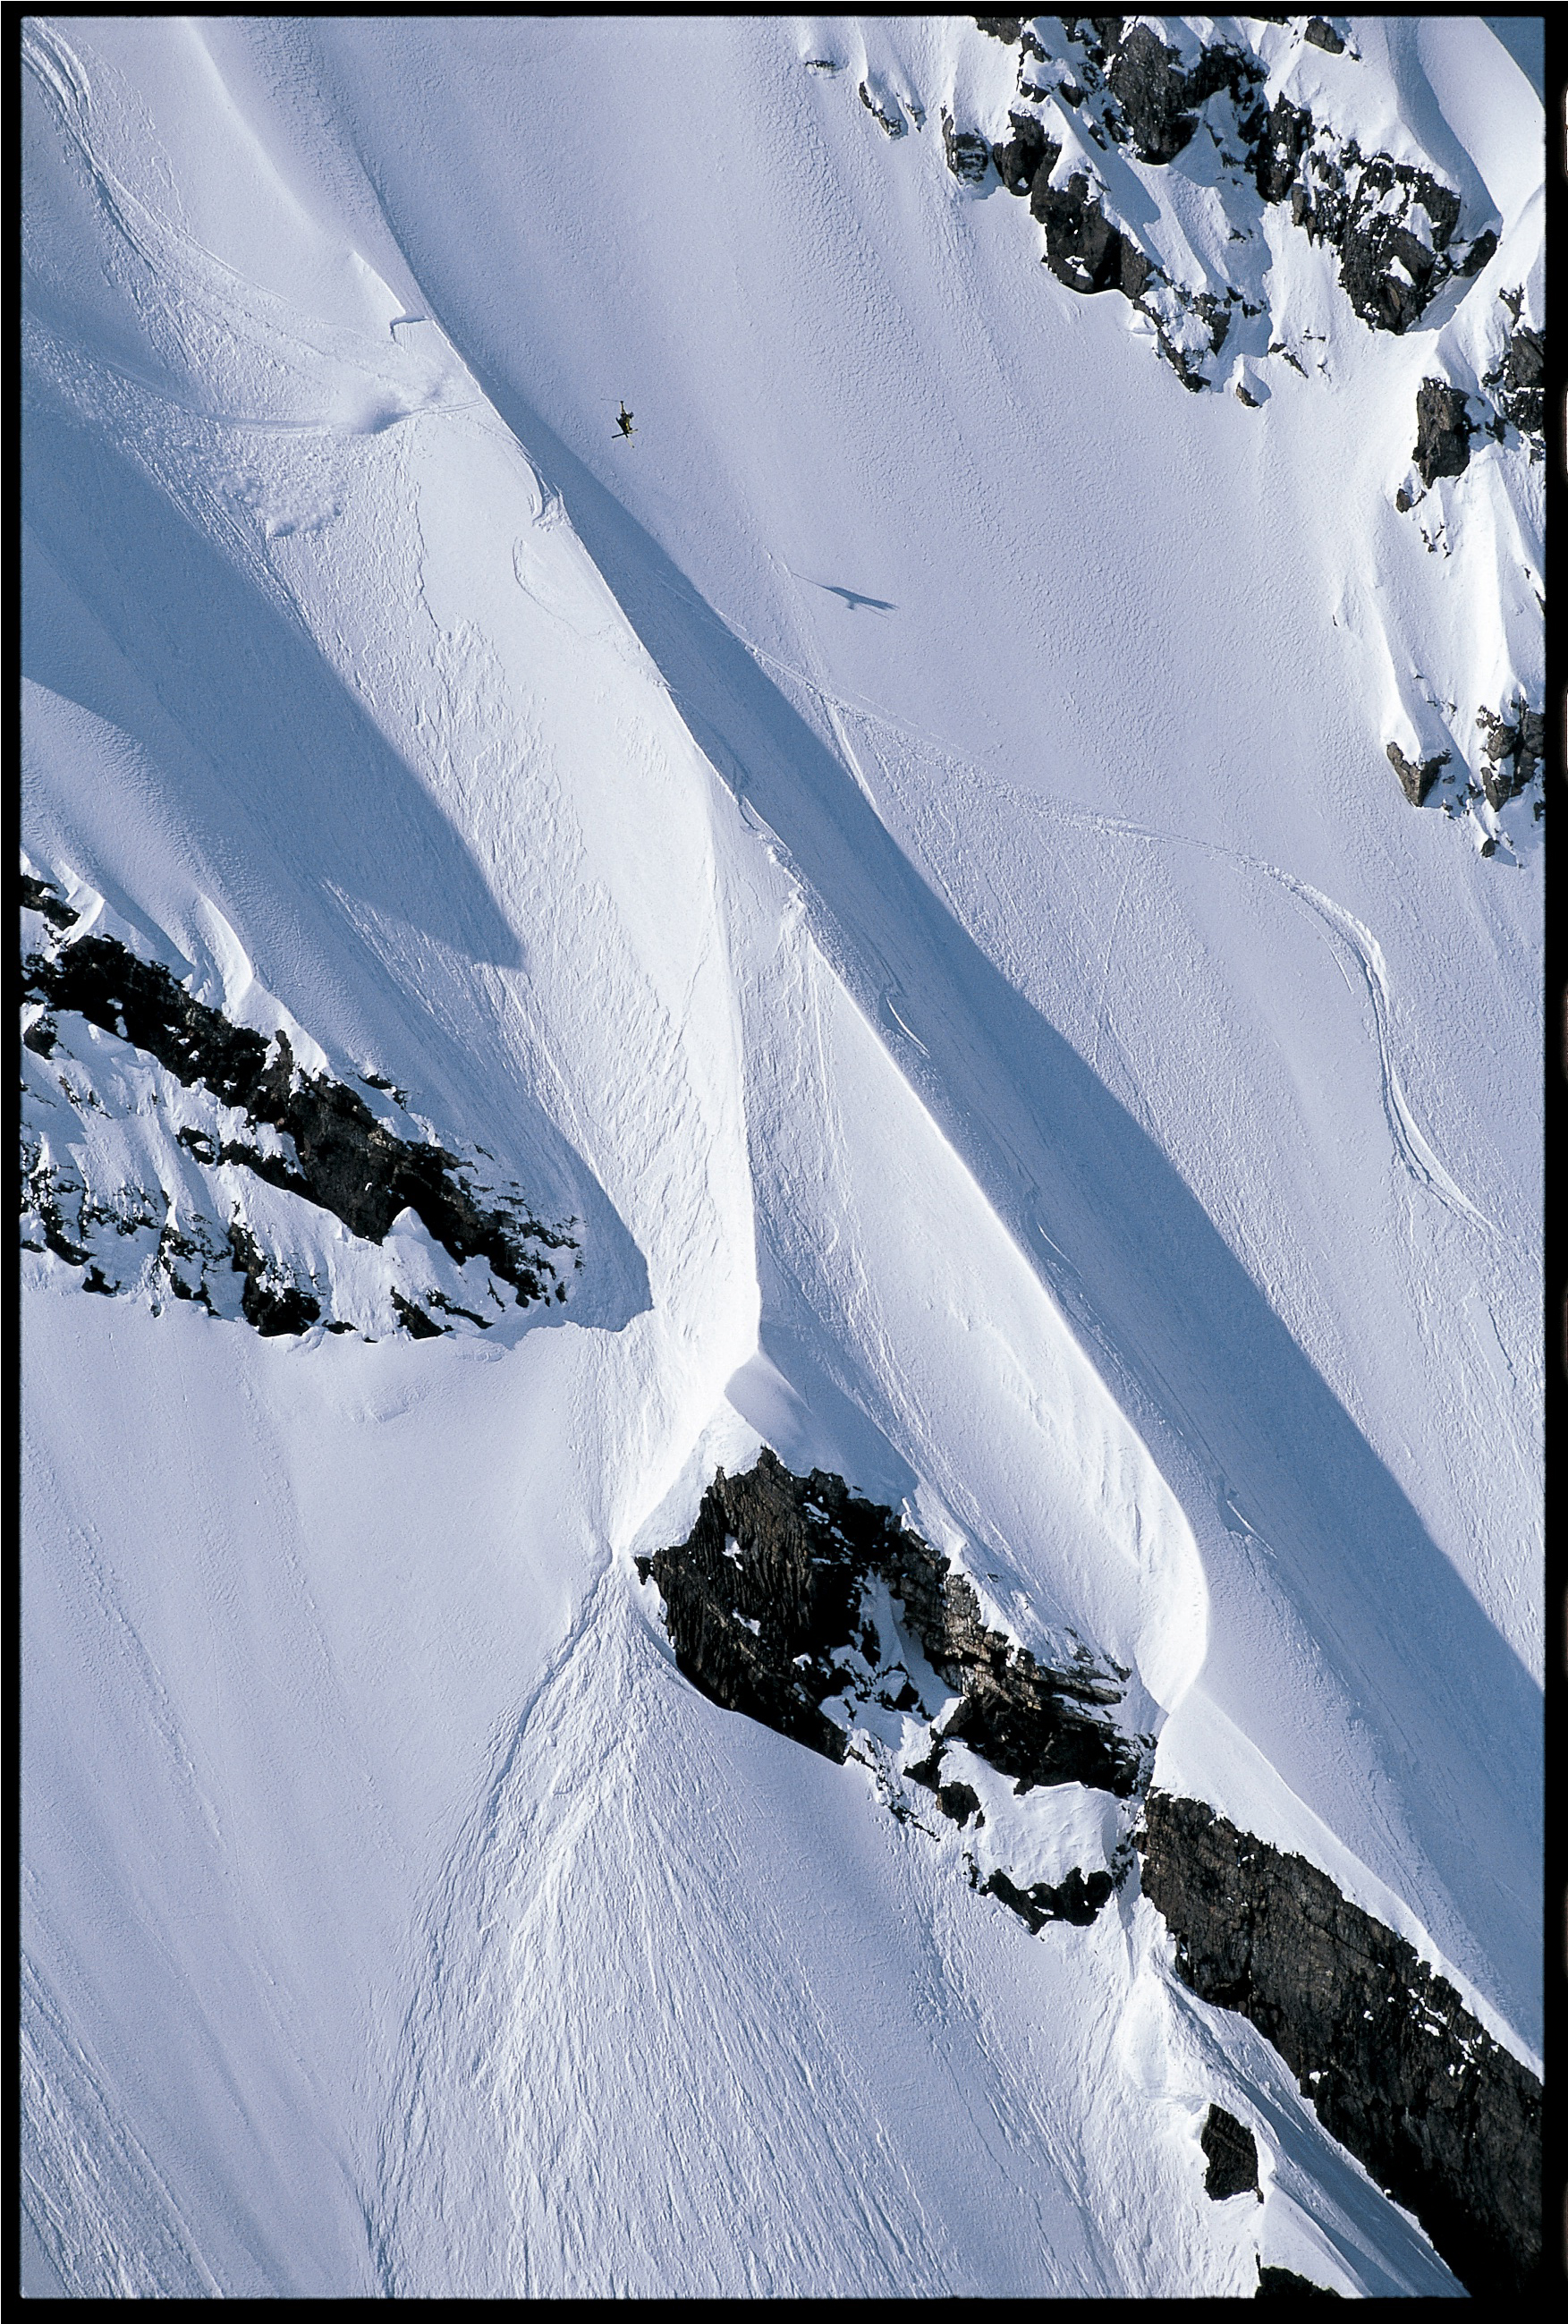 JP Auclair sends it in the Chugach 2001 by Flip McCririck